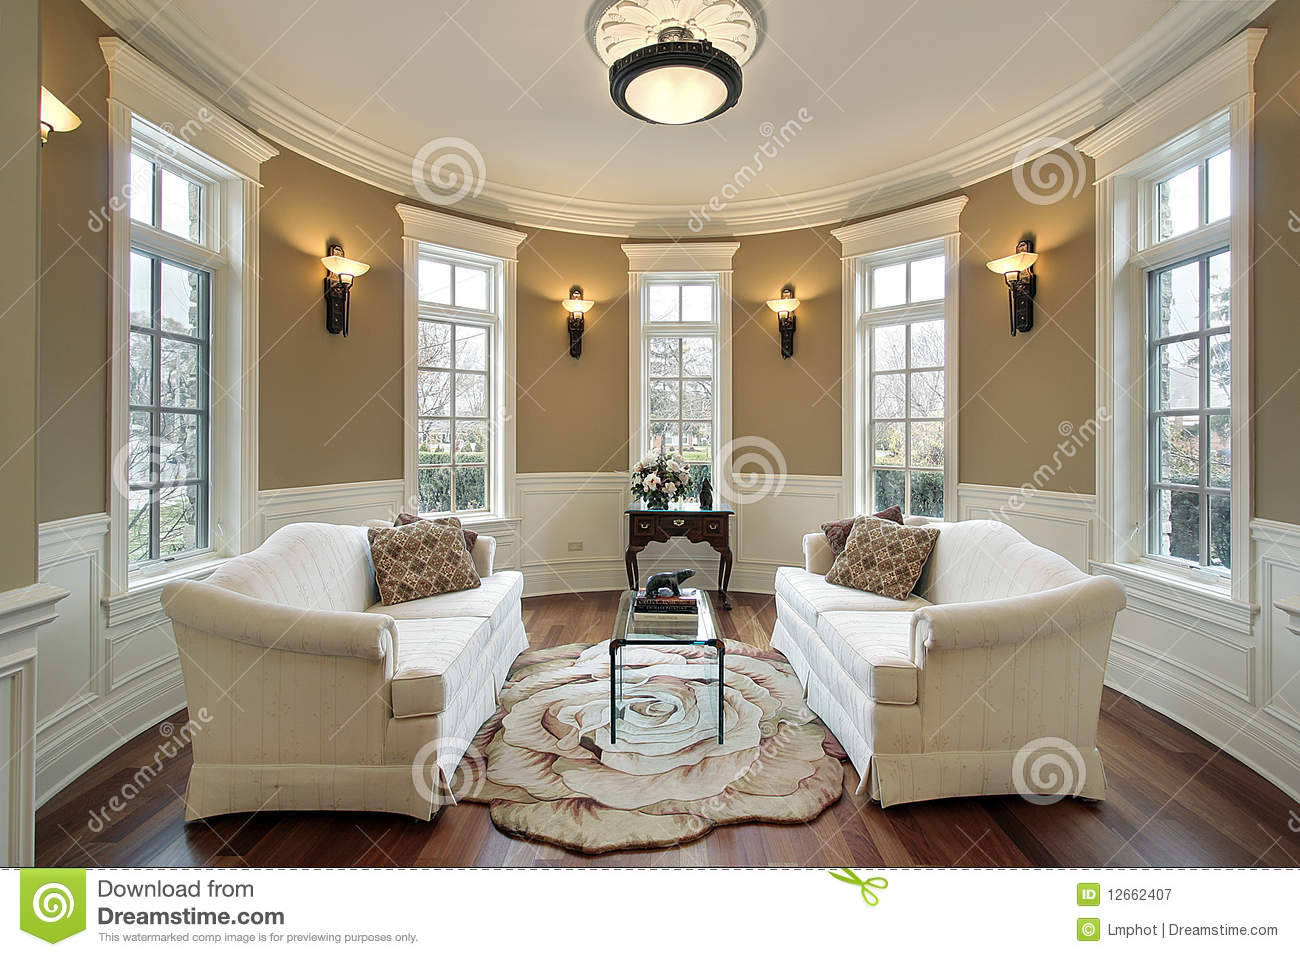 Living Room With Lighting Scones Royalty Free Stock Photography ...